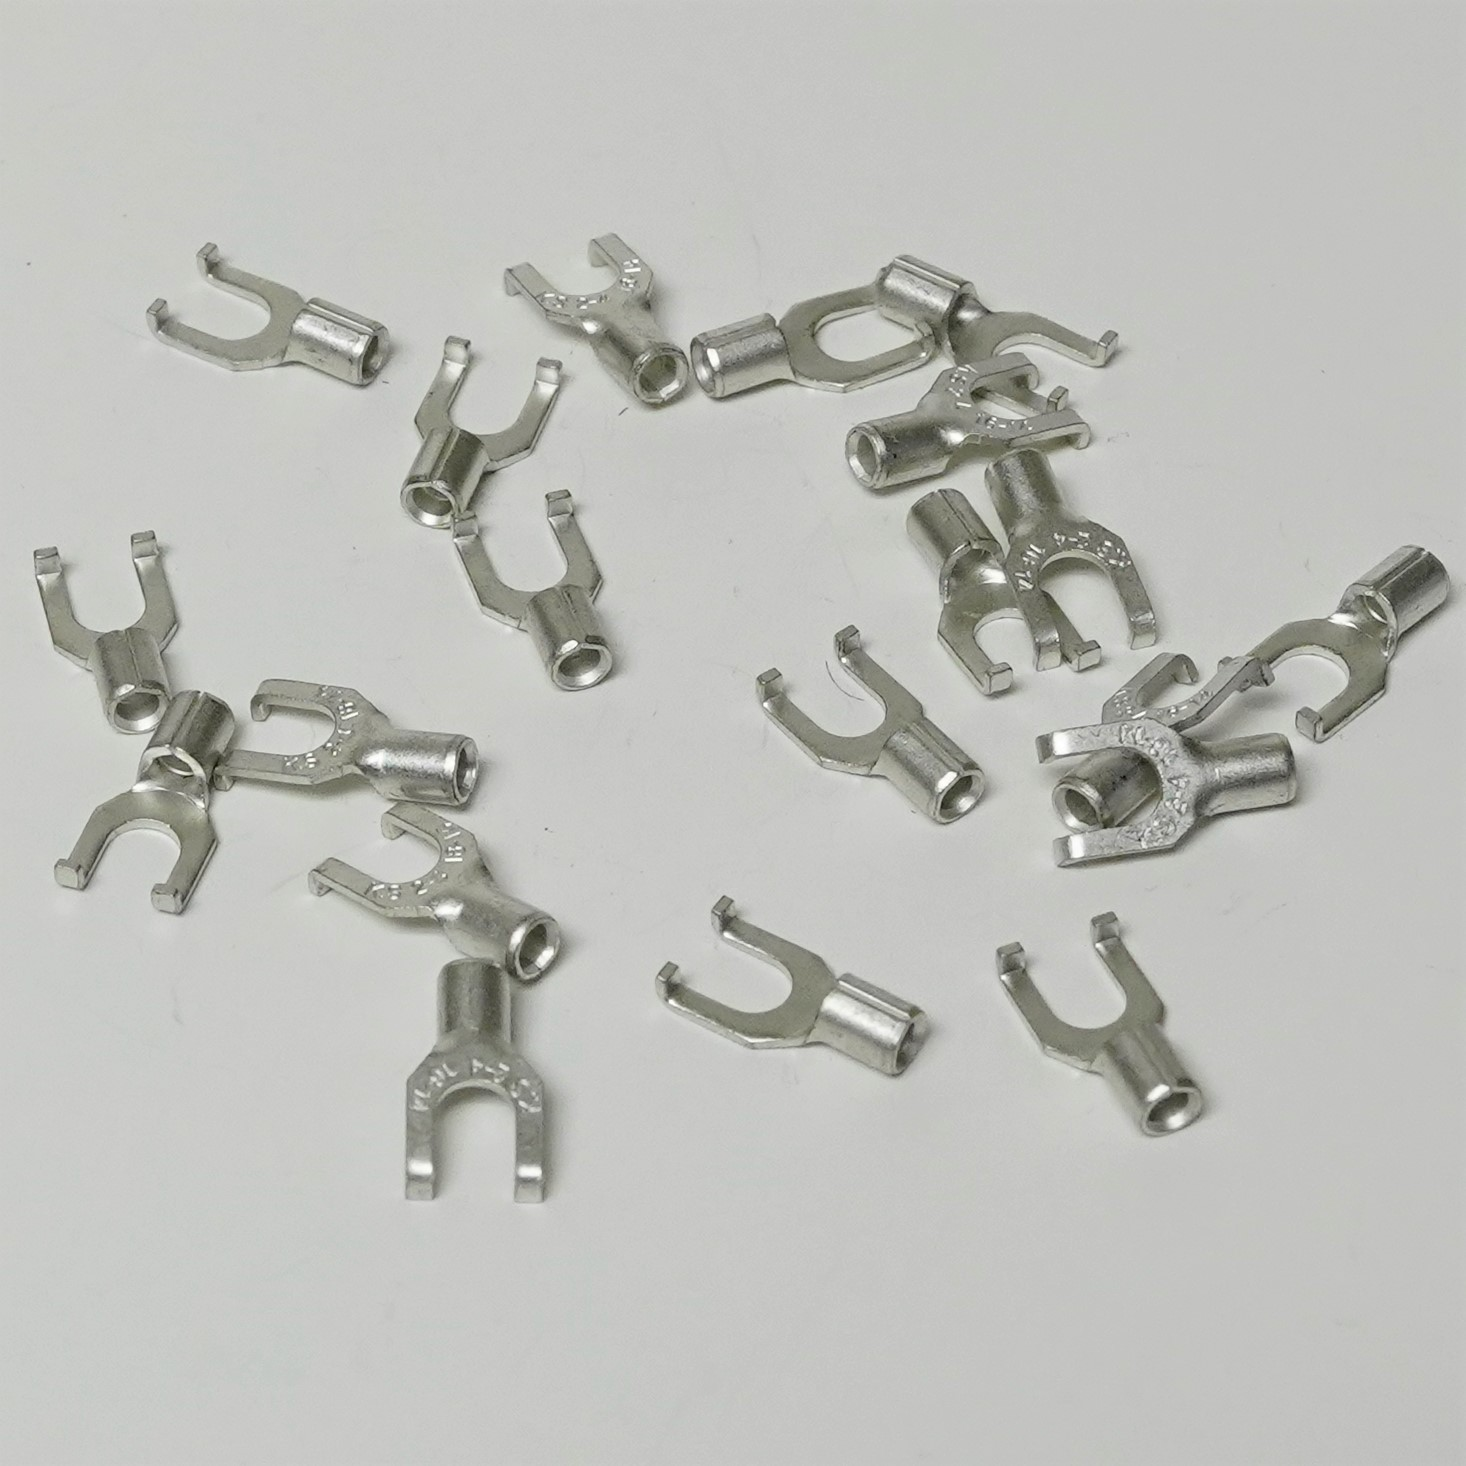 Supco T Non Insulated Flange Spade Terminal Connector